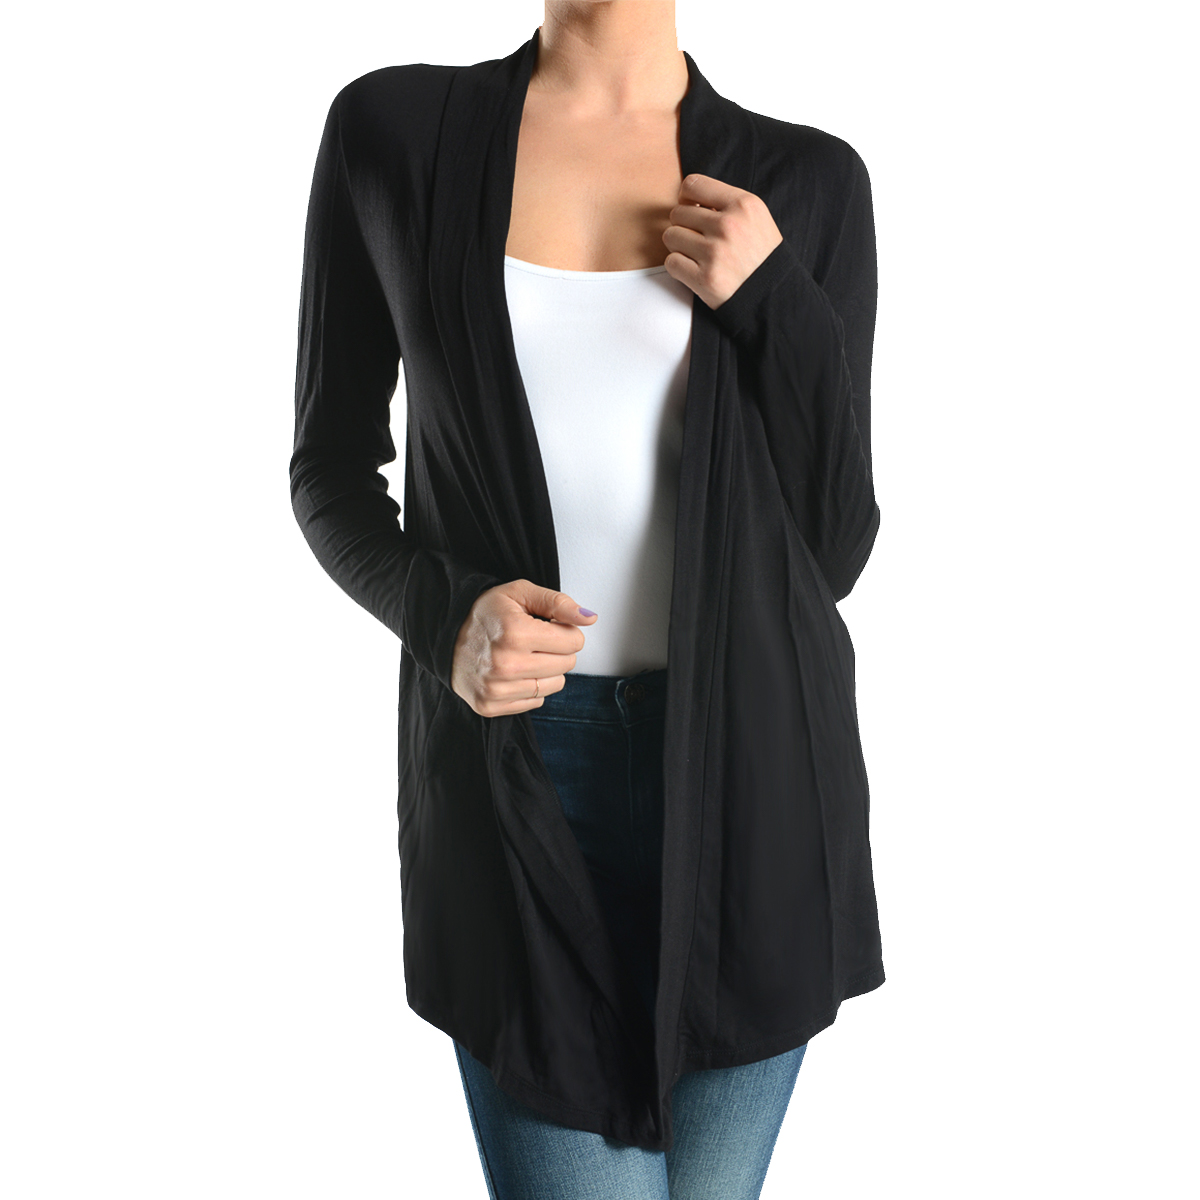 Women's Sofra Open-Front Soft Draped Long Sleeve Cardigan Sweater ...